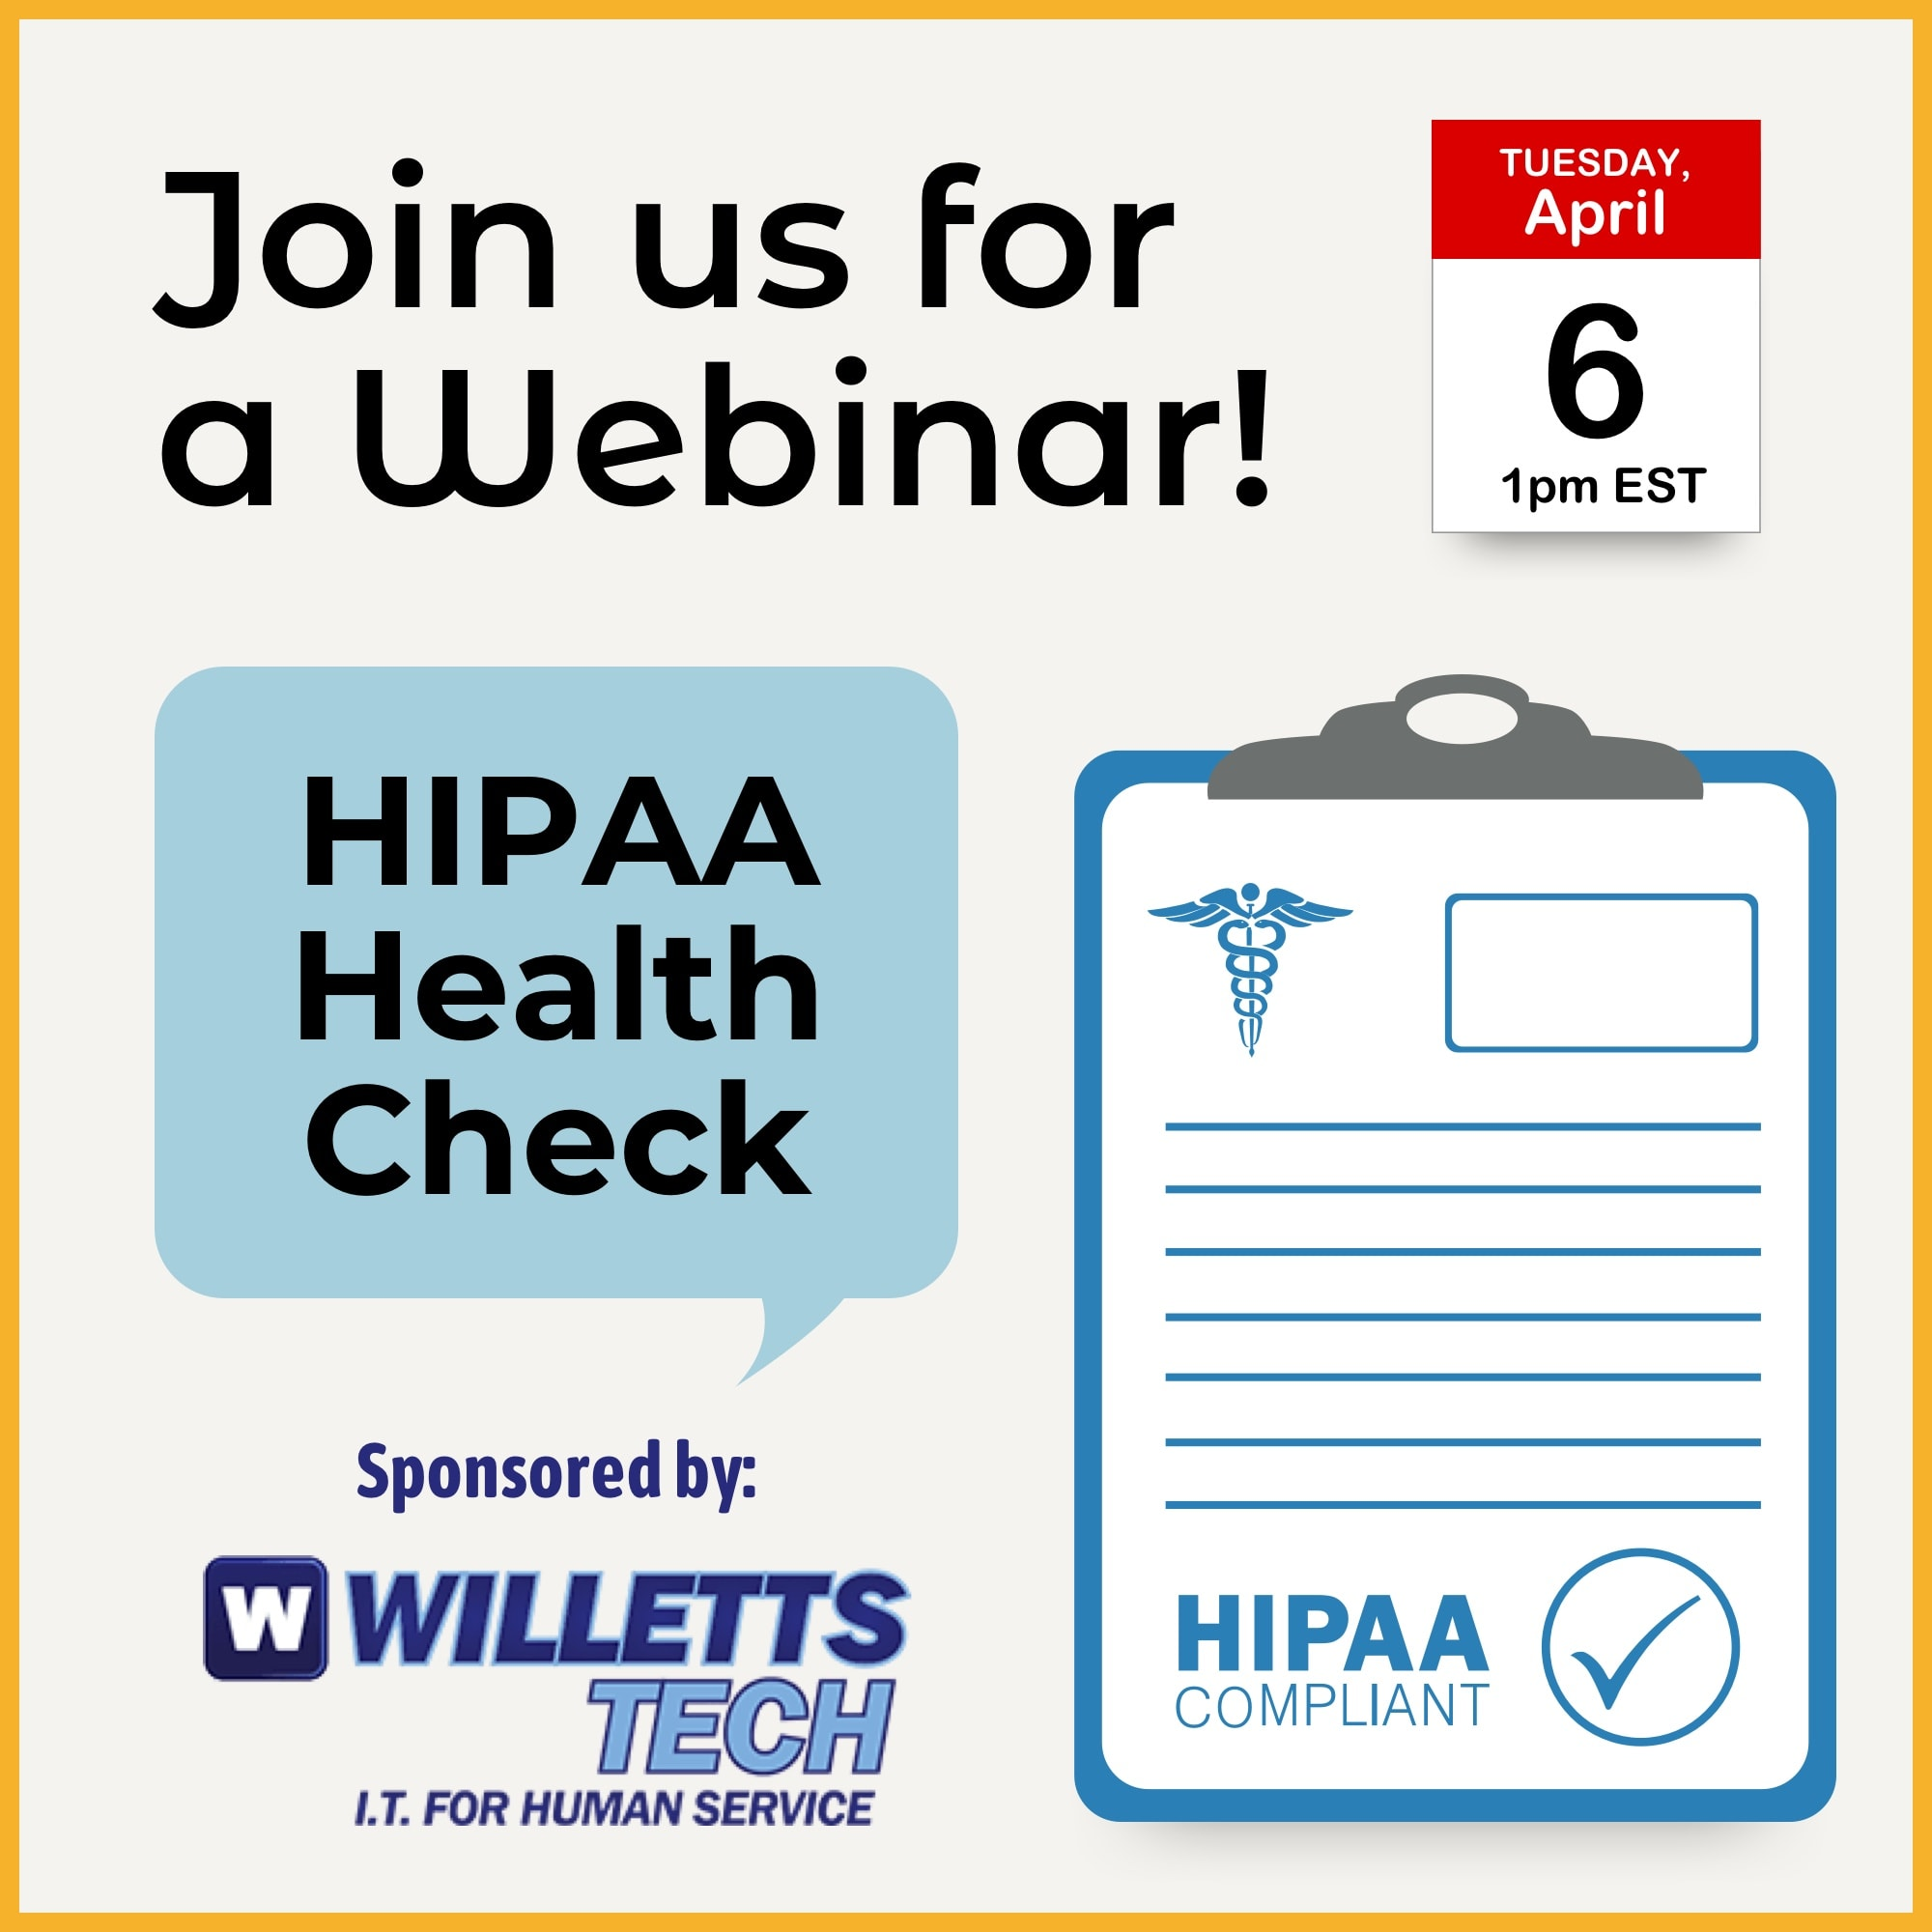 Join us for a Webinar on Tuesday, April 6th at 1pm EST: HIPAA Health Check. Sponsored by Willetts Tech.